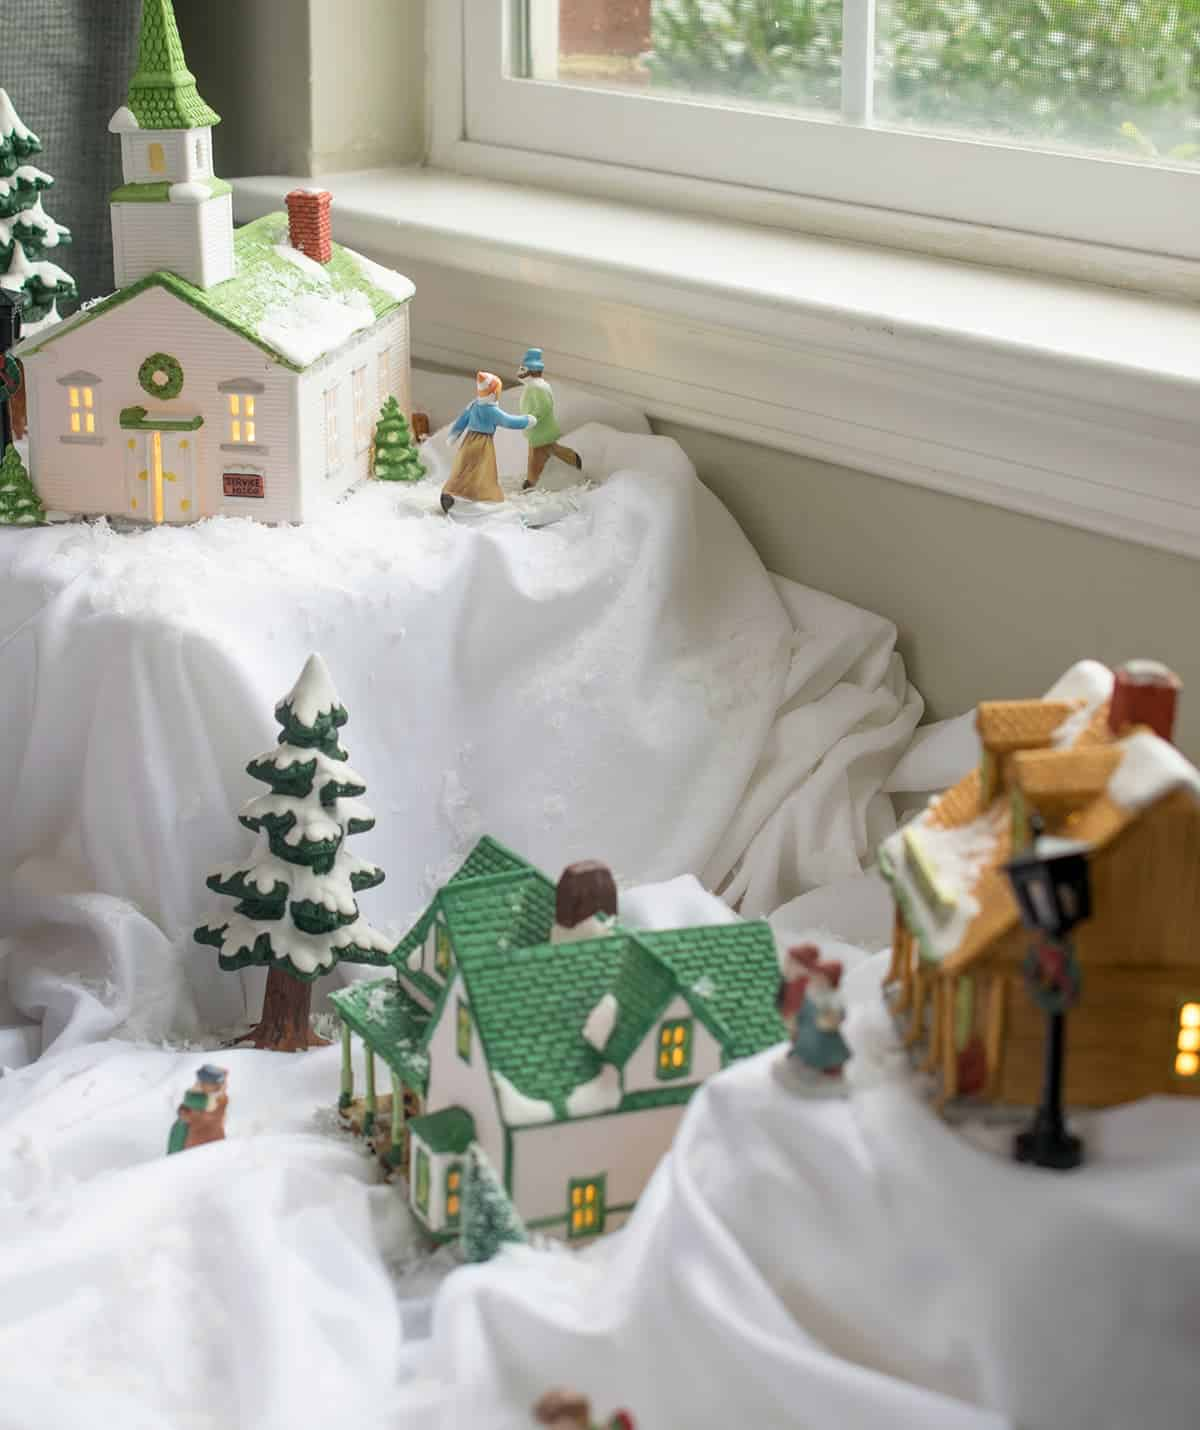 Close up of snowy town village using styrofoam blocks and white bed sheet as props.